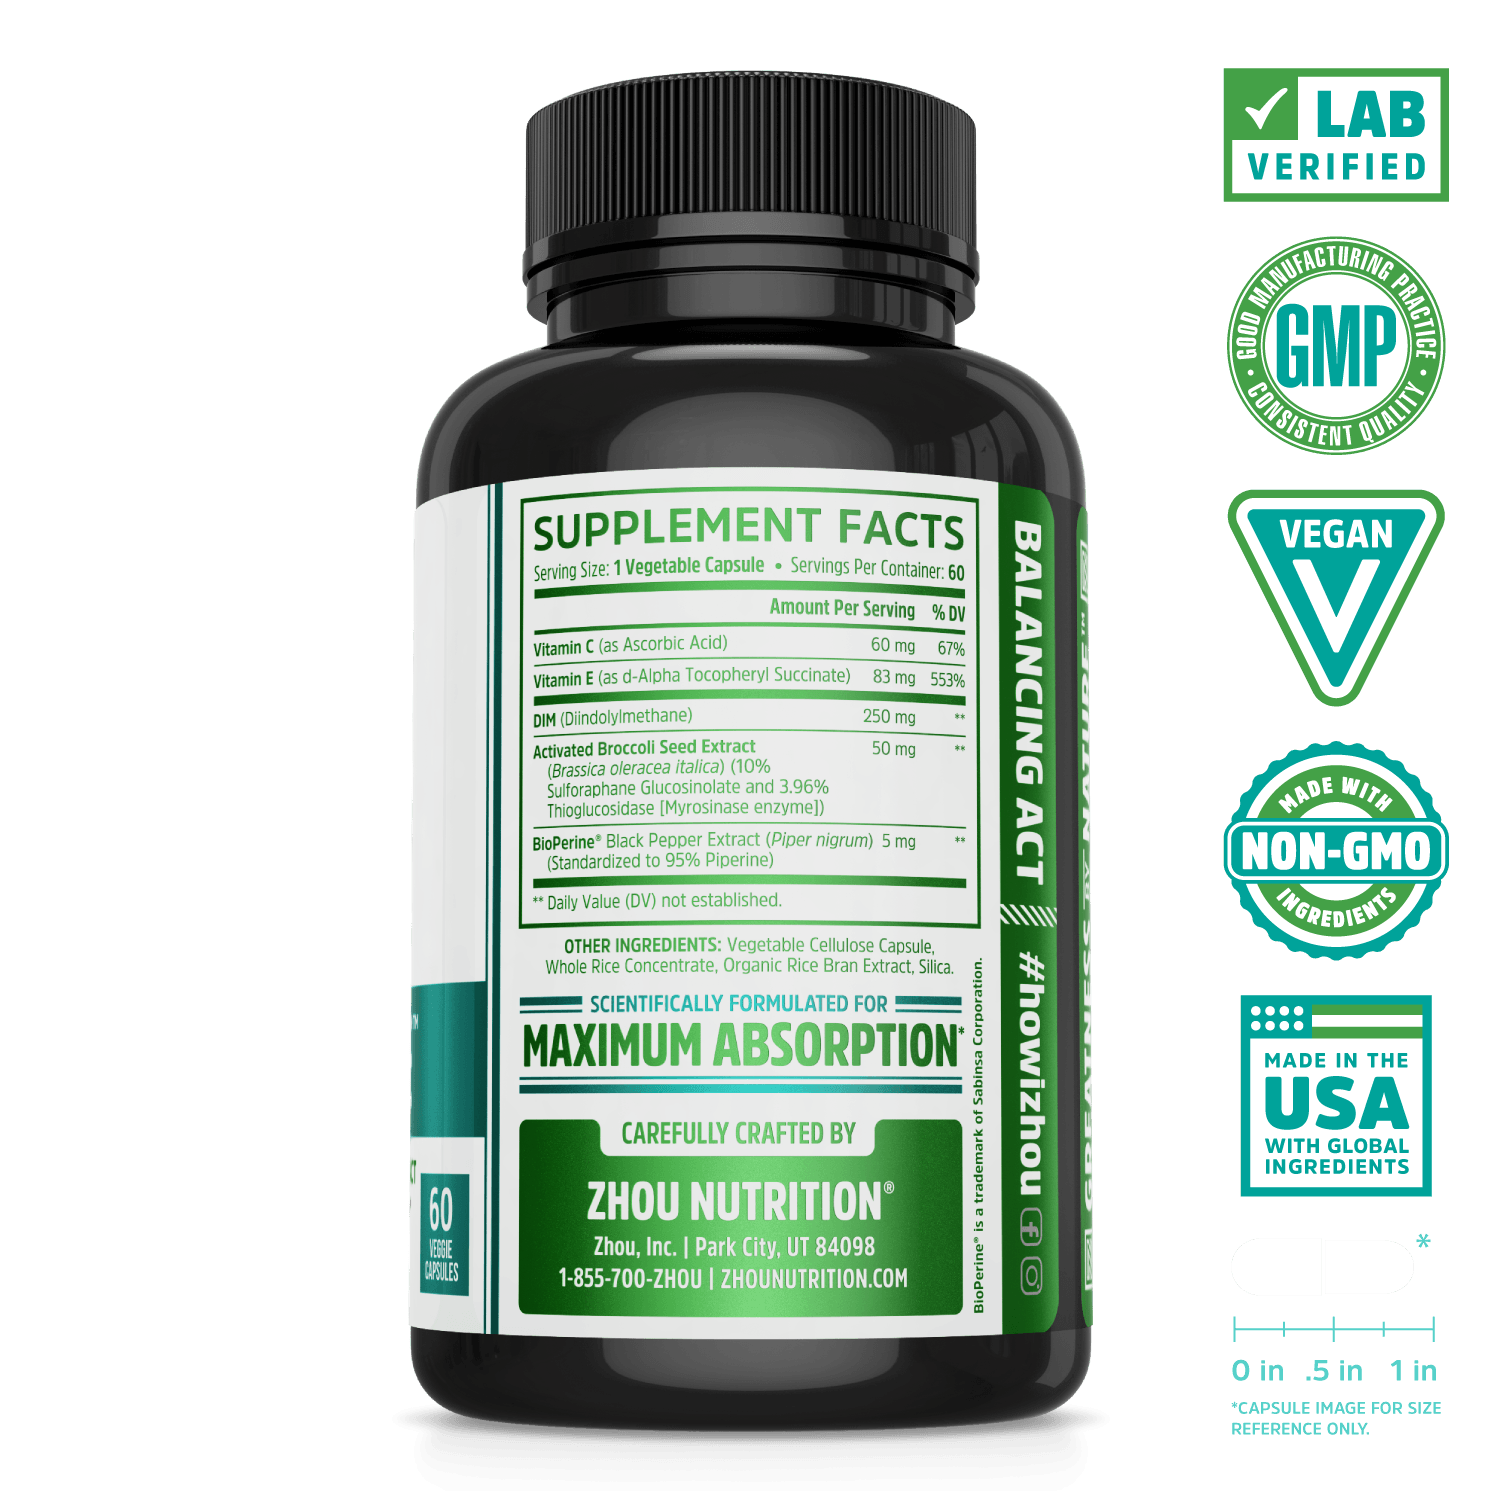 Zhou Nutrition DIM Active Hormone Balance Support for Women and Men. Bottle side. Lab verified, good manufacturing practices, vegan, made with non-GMO ingredients, made in the USA with global ingredients.